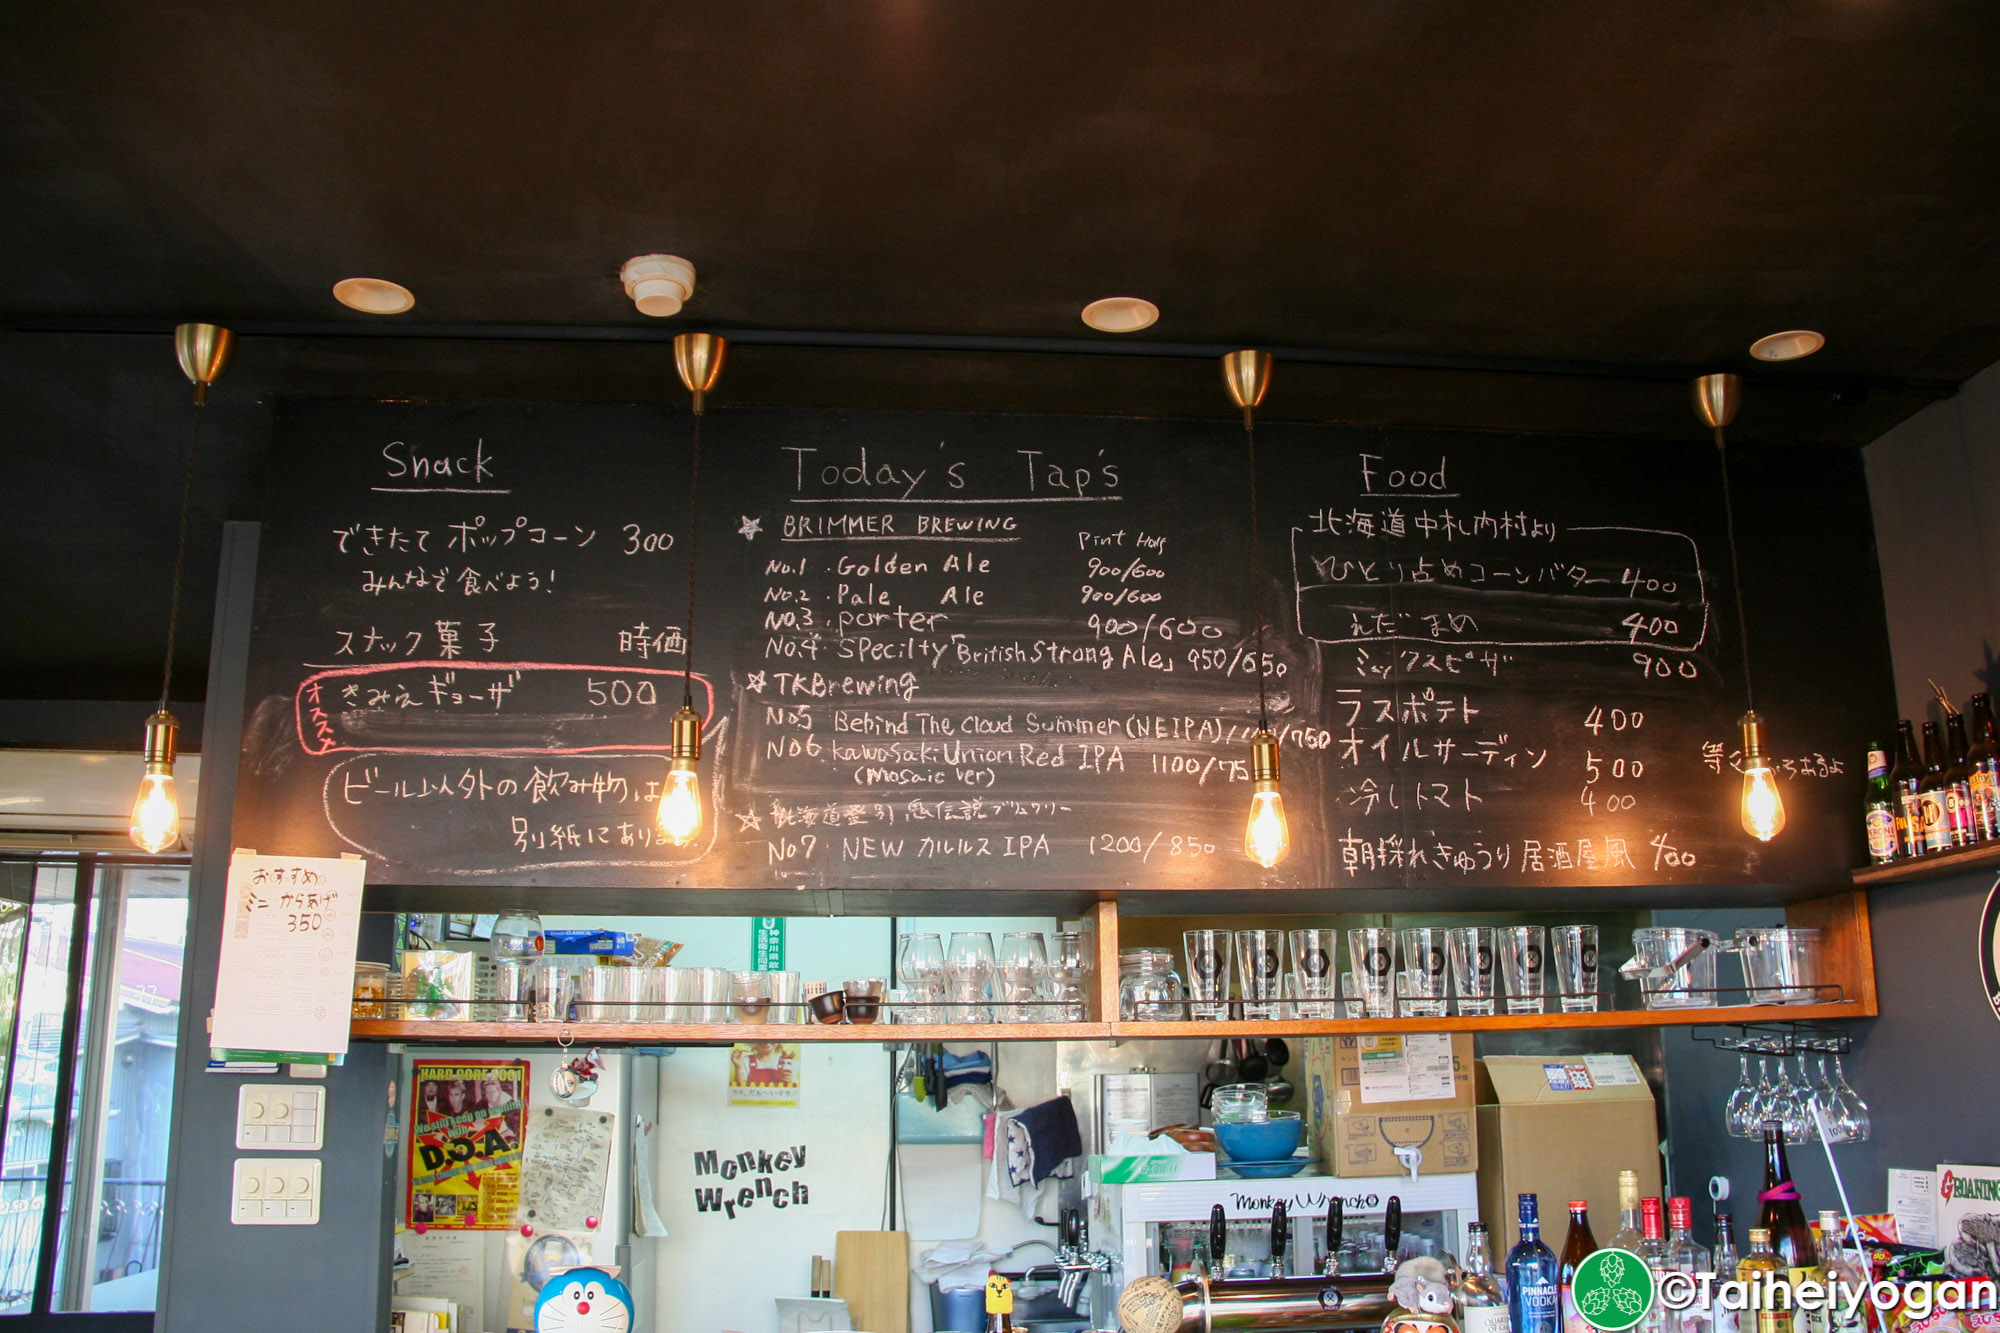 Monkey Wrench - Interior - Menu